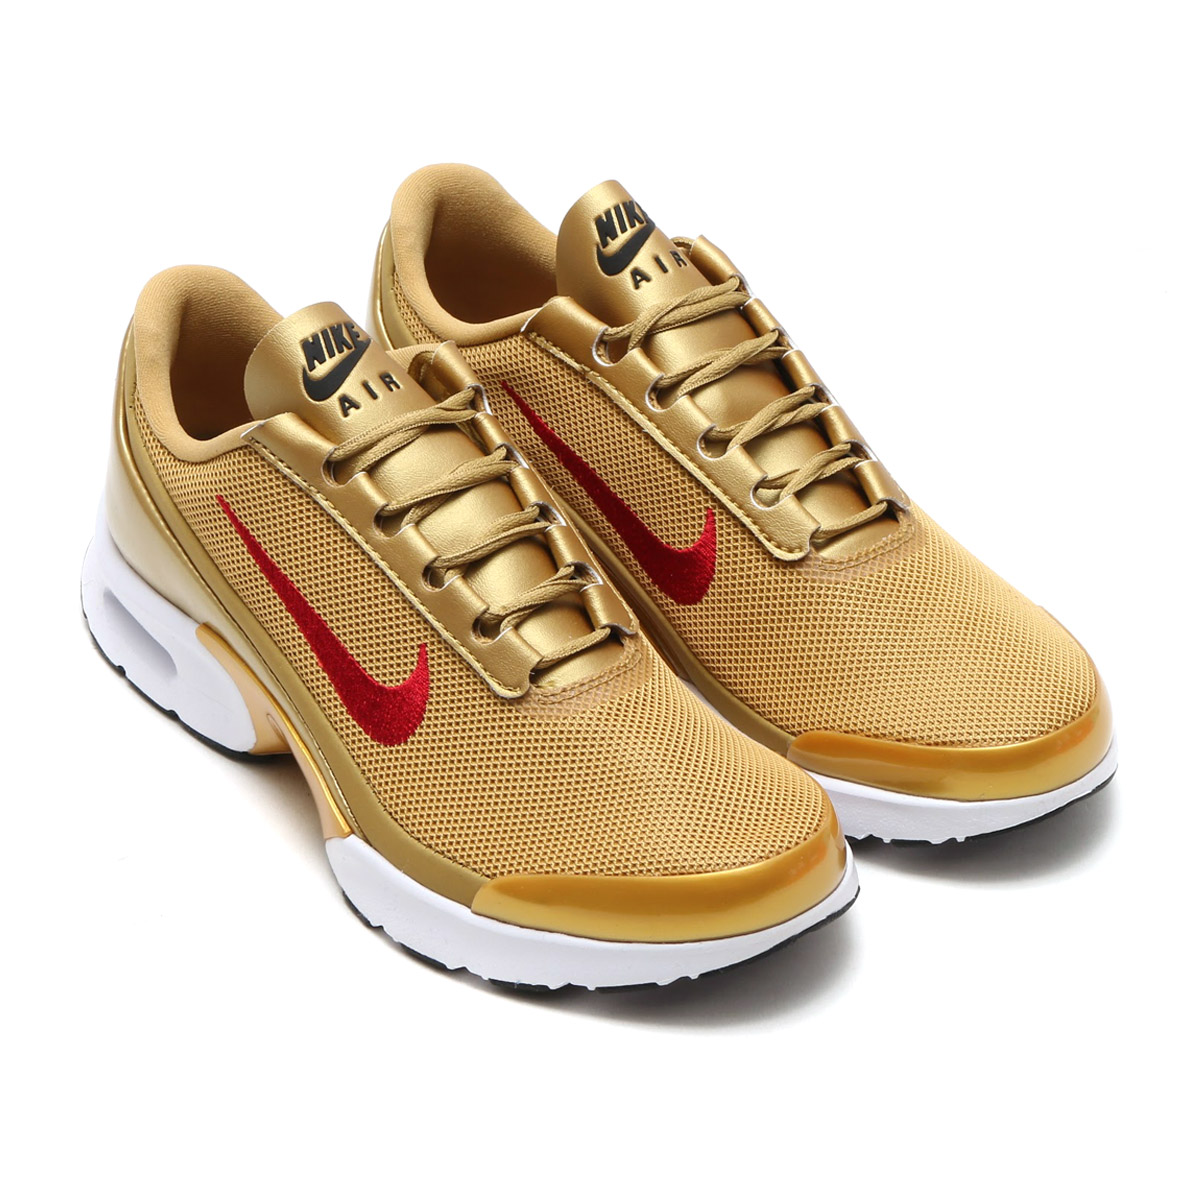 ac7a055e78 The style that latest Air Max with the Air technology of Nike is modern is  a feature. I make a letter of